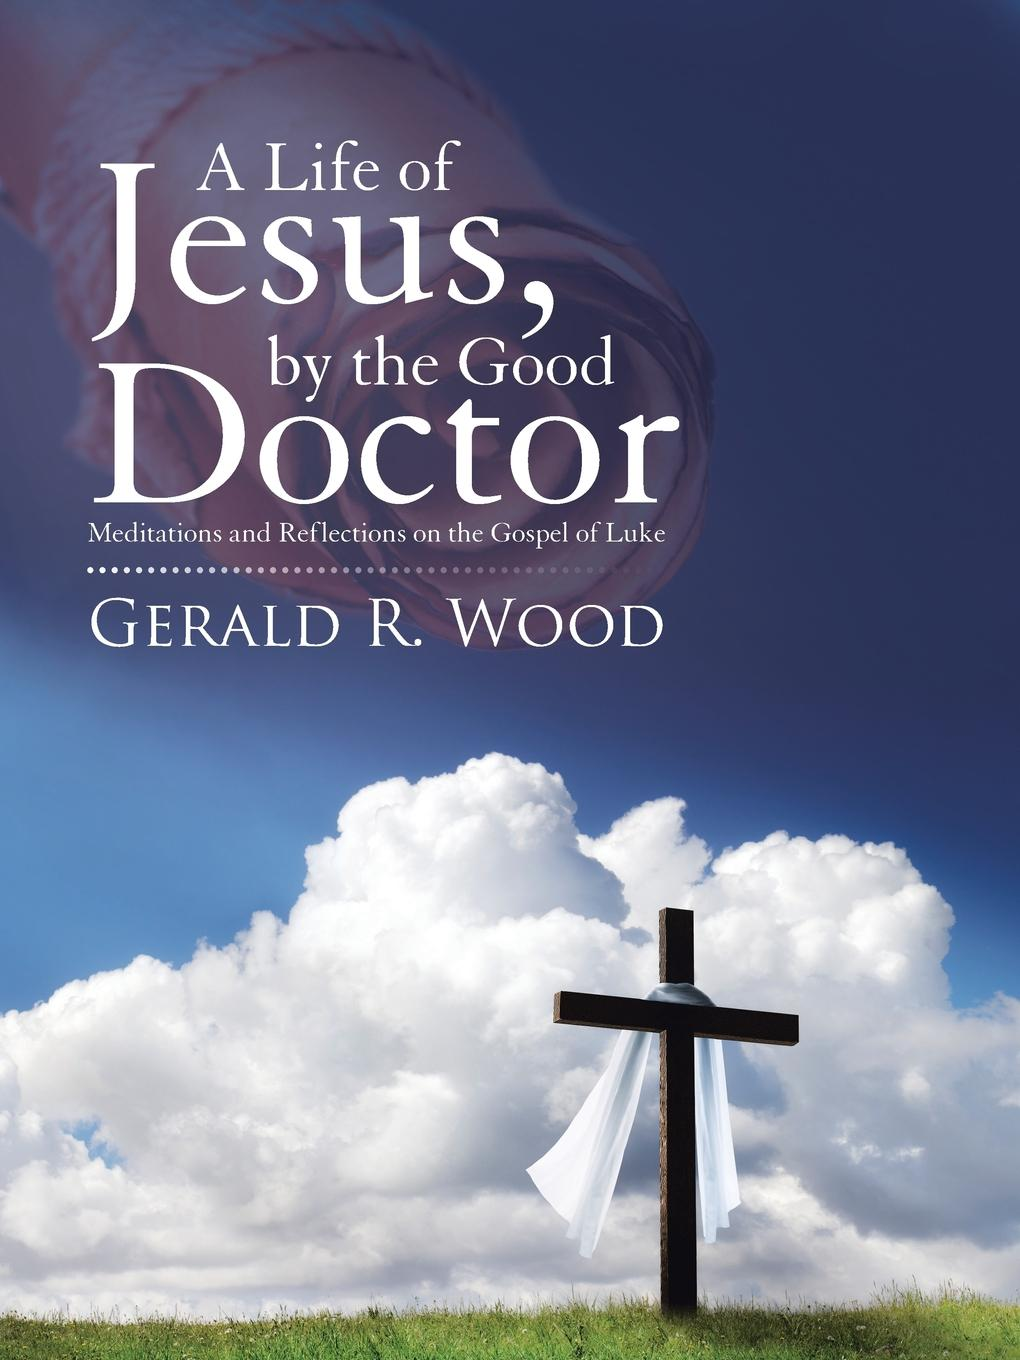 лучшая цена Gerald R. Wood A Life of Jesus, by the Good Doctor. Meditations and Reflections on the Gospel of Luke